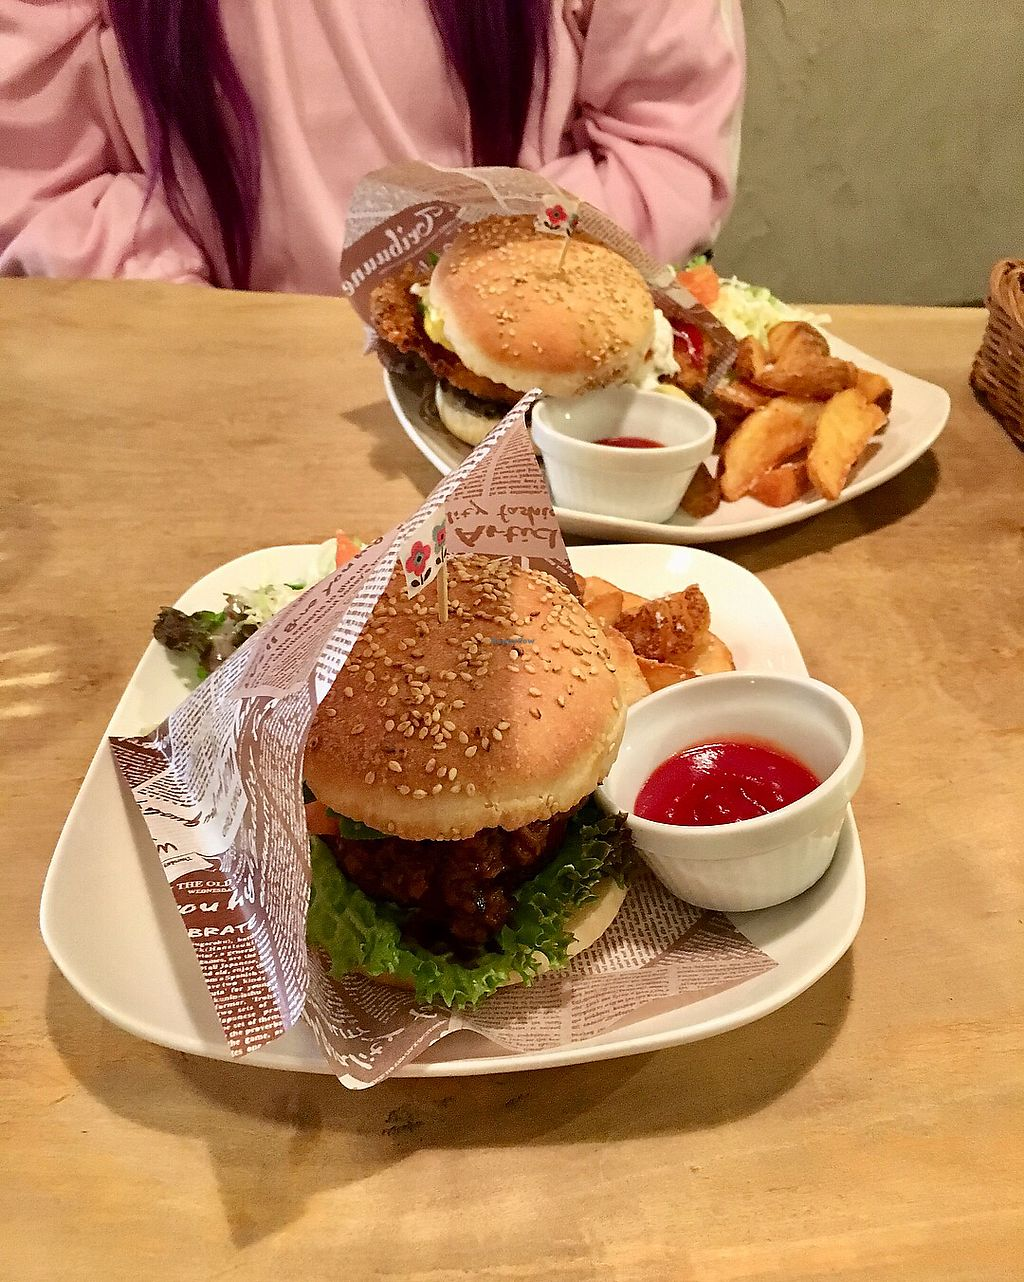 """Photo of Morpho Cafe  by <a href=""""/members/profile/CamilaSilvaL"""">CamilaSilvaL</a> <br/>Burgers  <br/> January 5, 2018  - <a href='/contact/abuse/image/32107/343182'>Report</a>"""